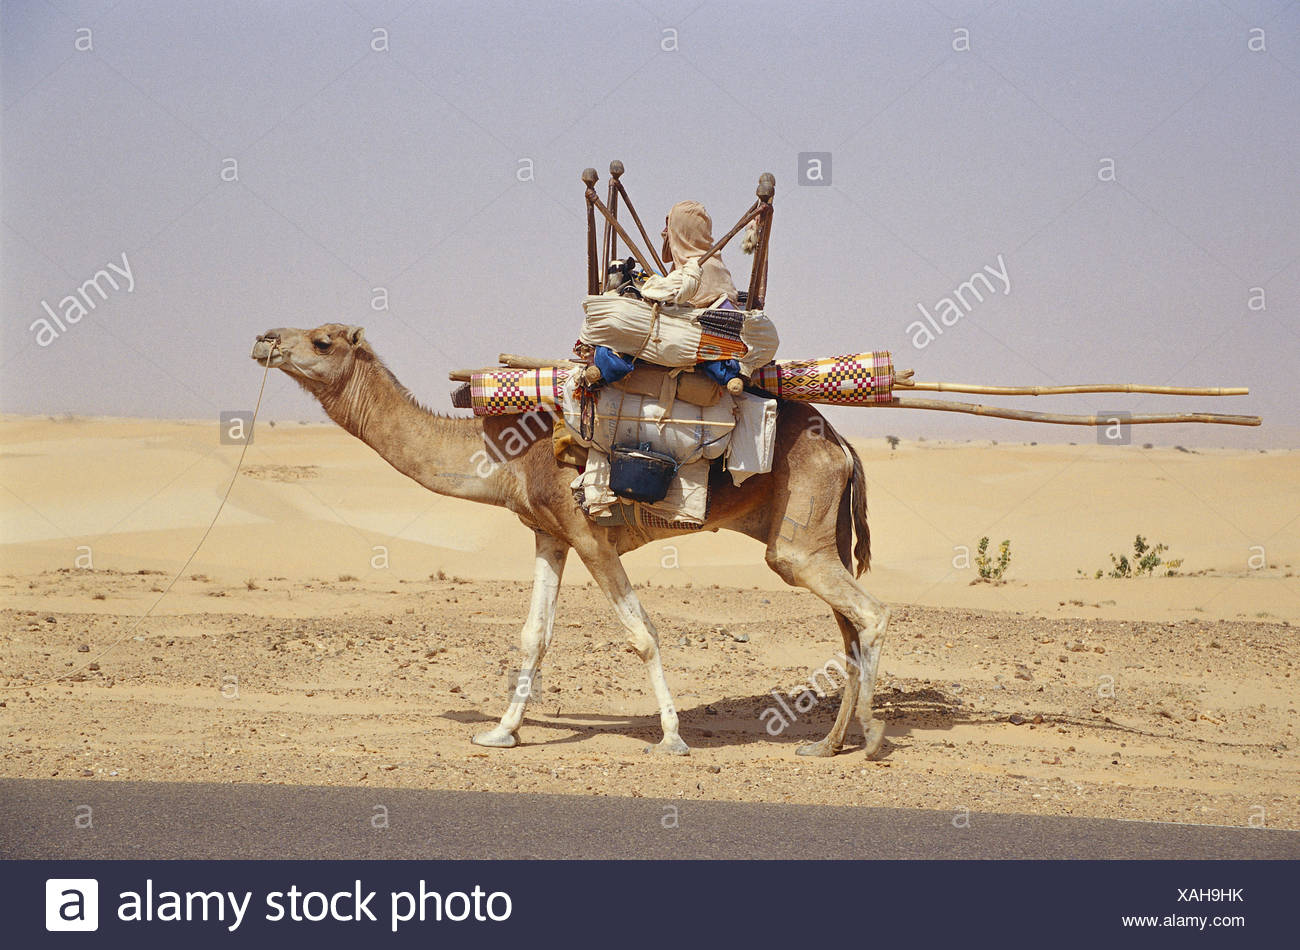 Mauritania, camel, bleed, household, Africa, West Africa, scenery, desert, person, local, Mauritanian, African, animal, benefit animal, charge, nomad, Sand desert, - Stock Image